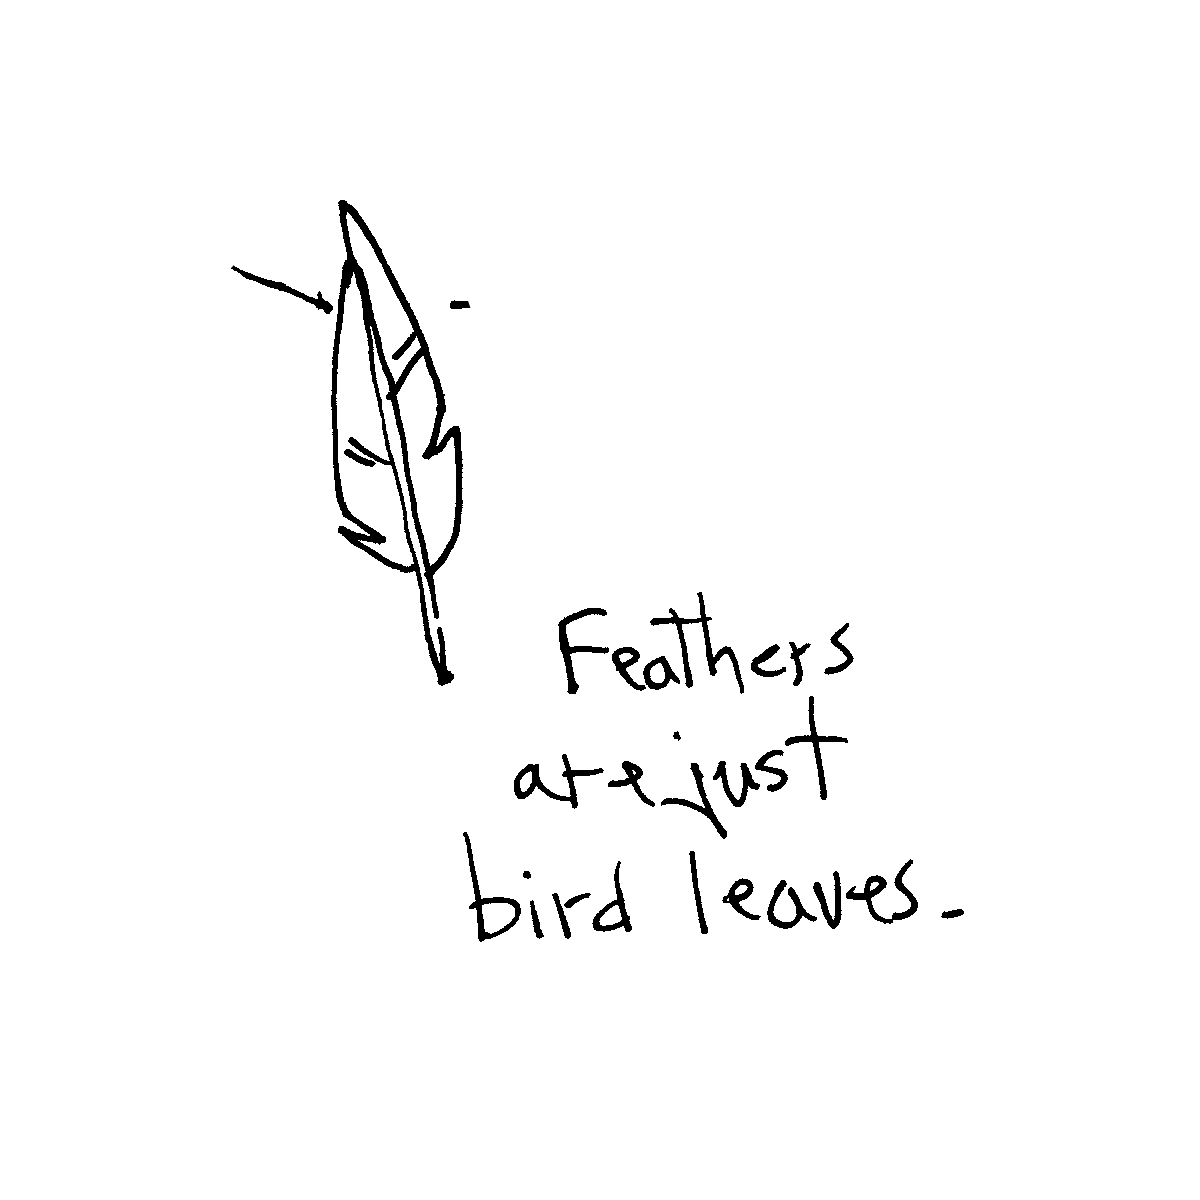 bird leaves cartoon doodle